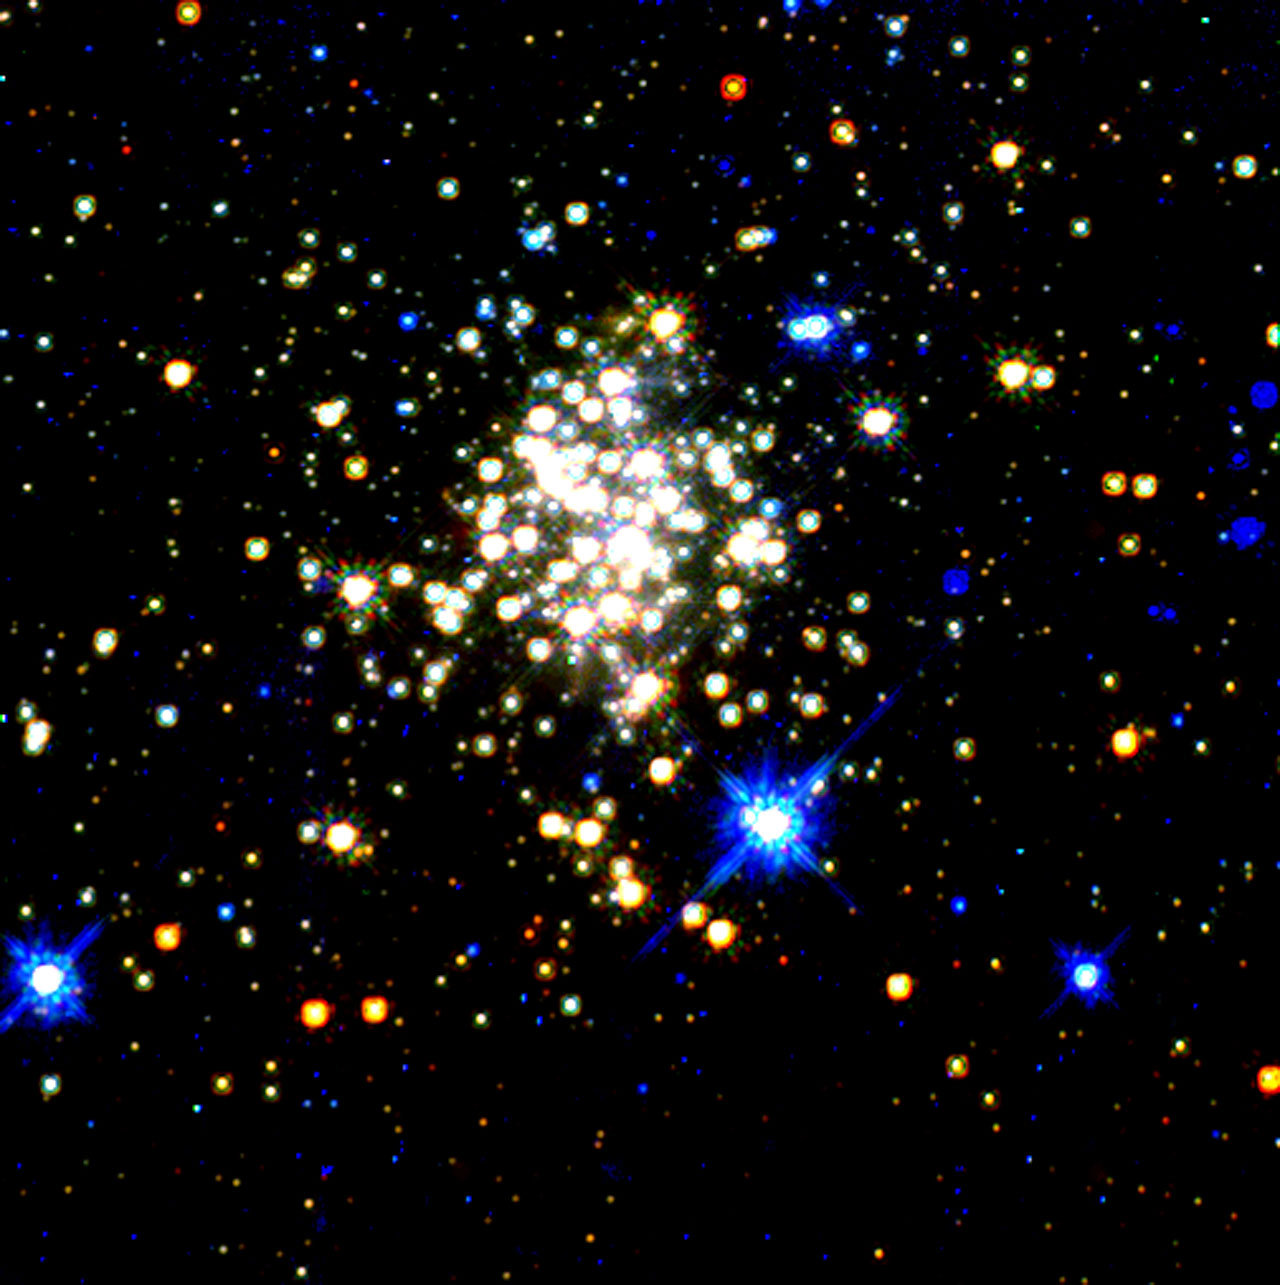 alpha star cluster - photo #11